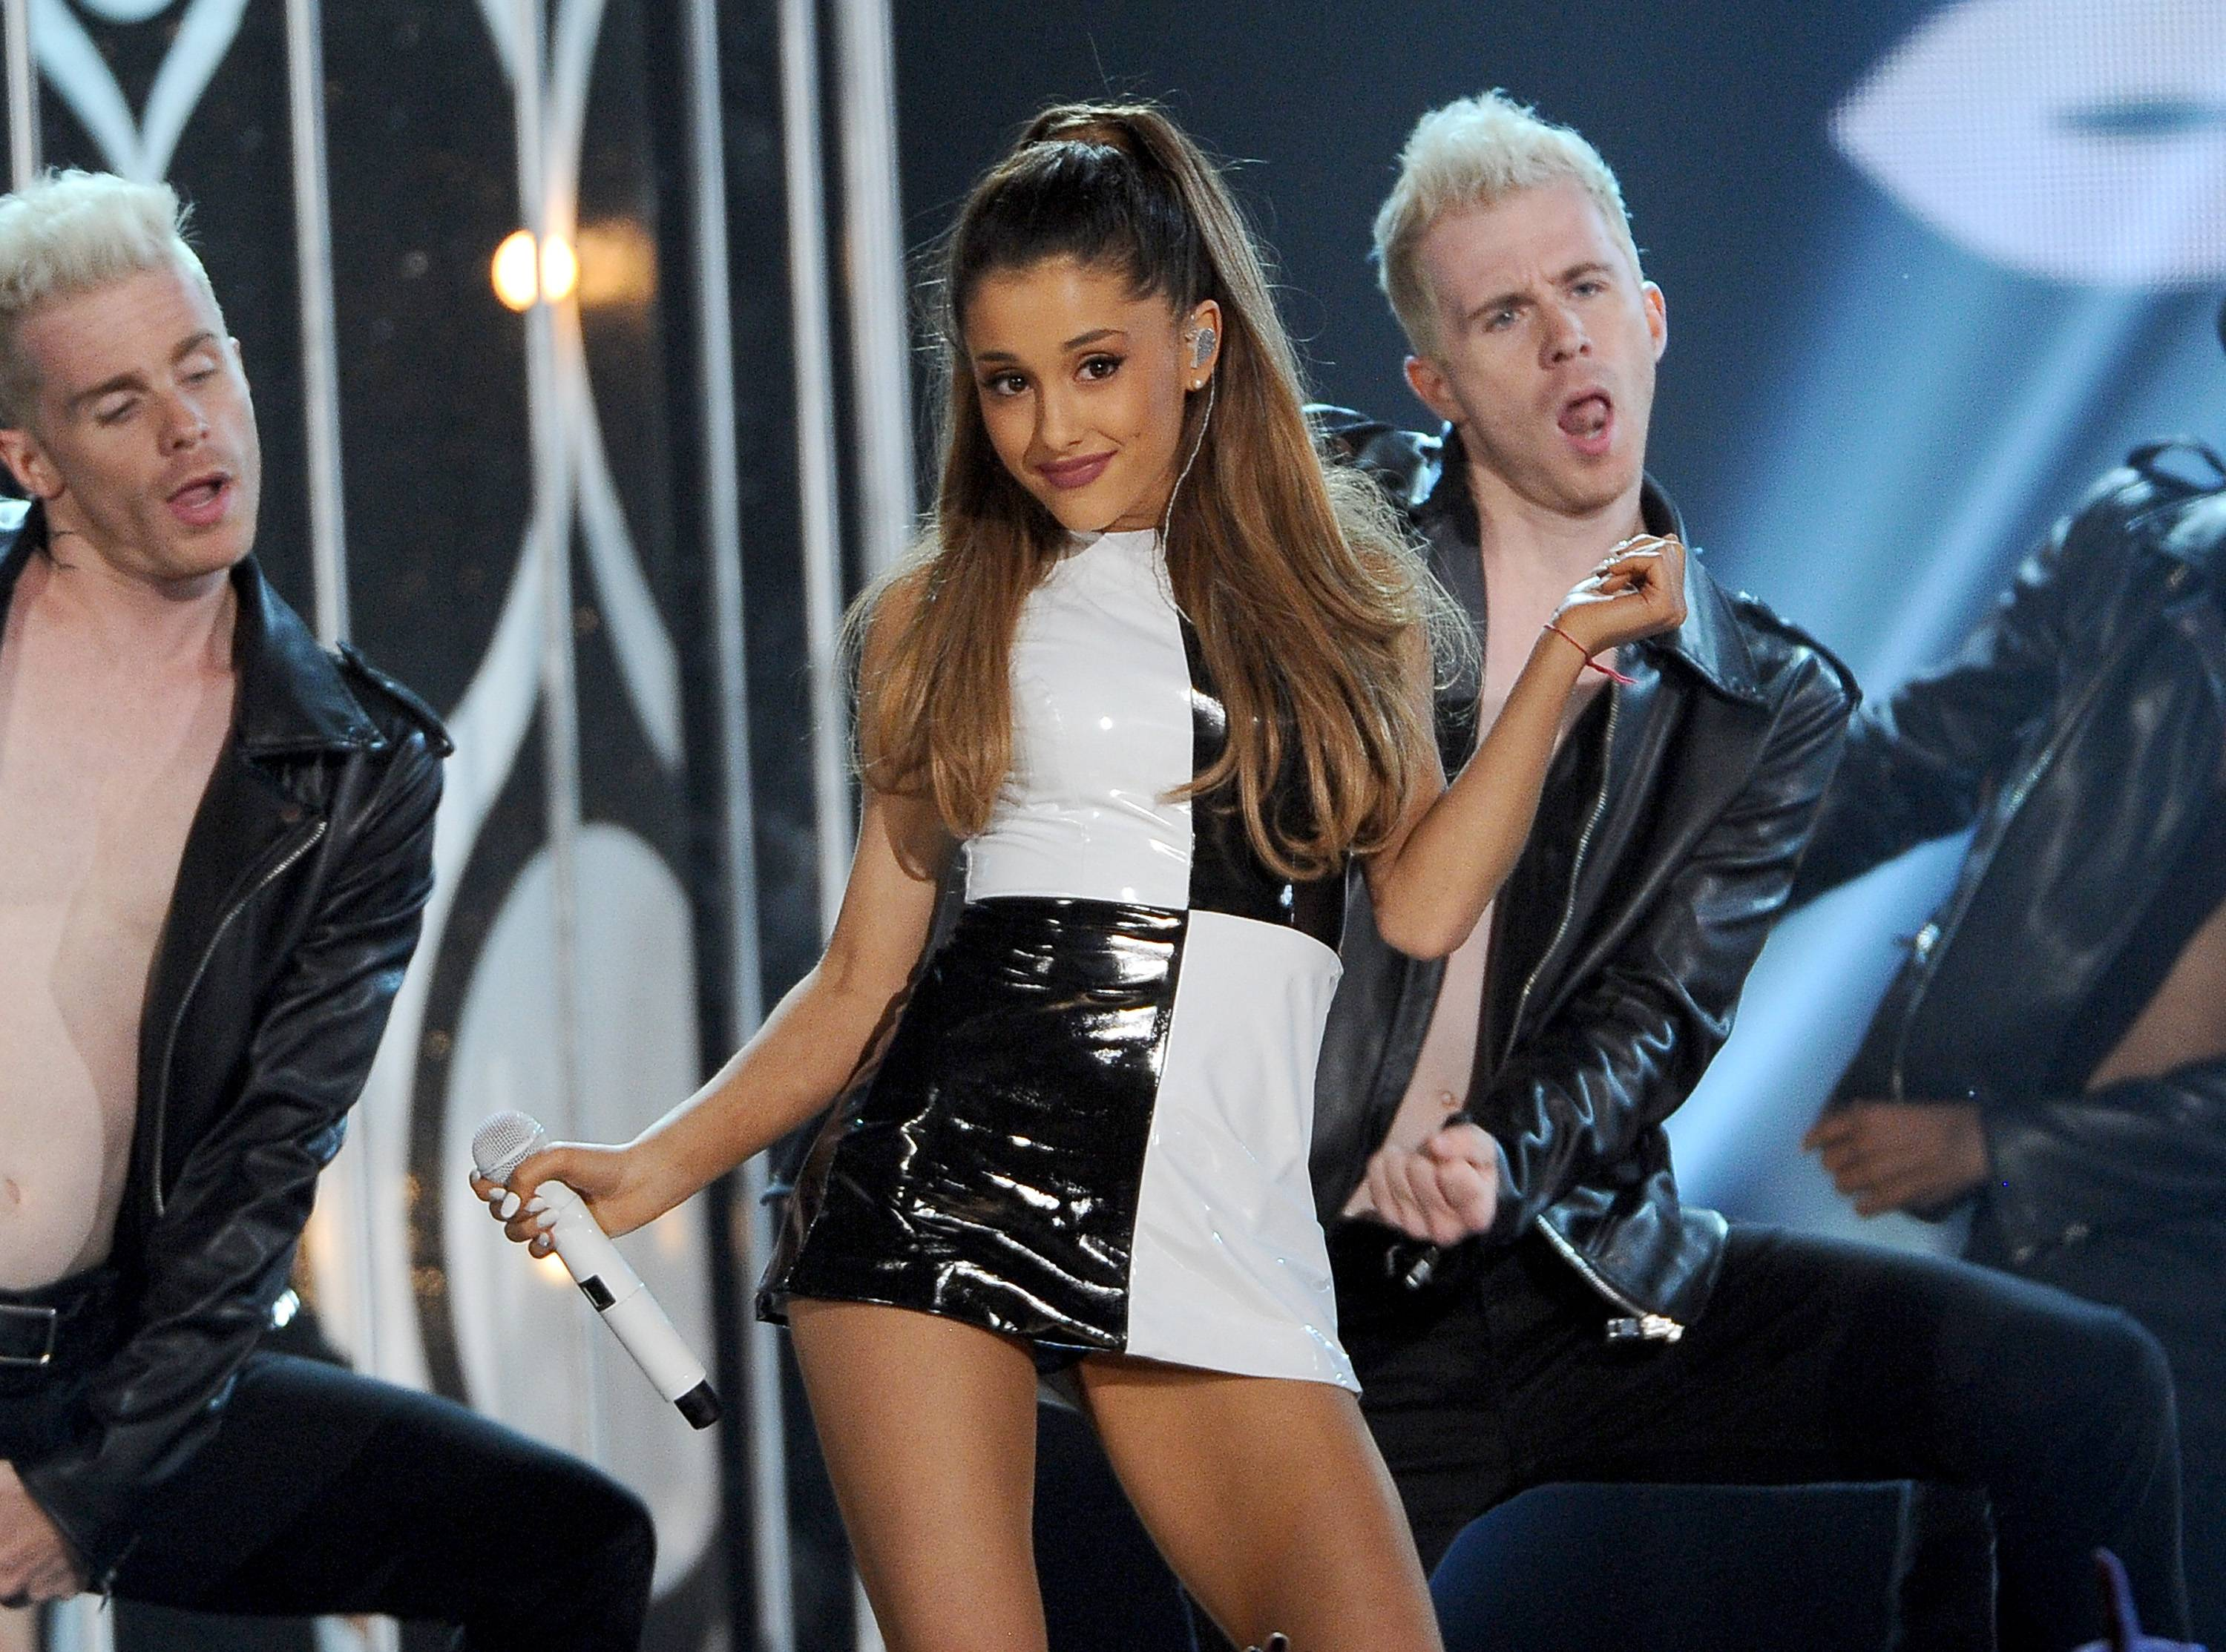 Singer Ariana Grande will perform Tuesday, March 3, at the Allstate Arena in Rosemont. Tickets go on sale at 10 a.m. Saturday, Sept. 20.